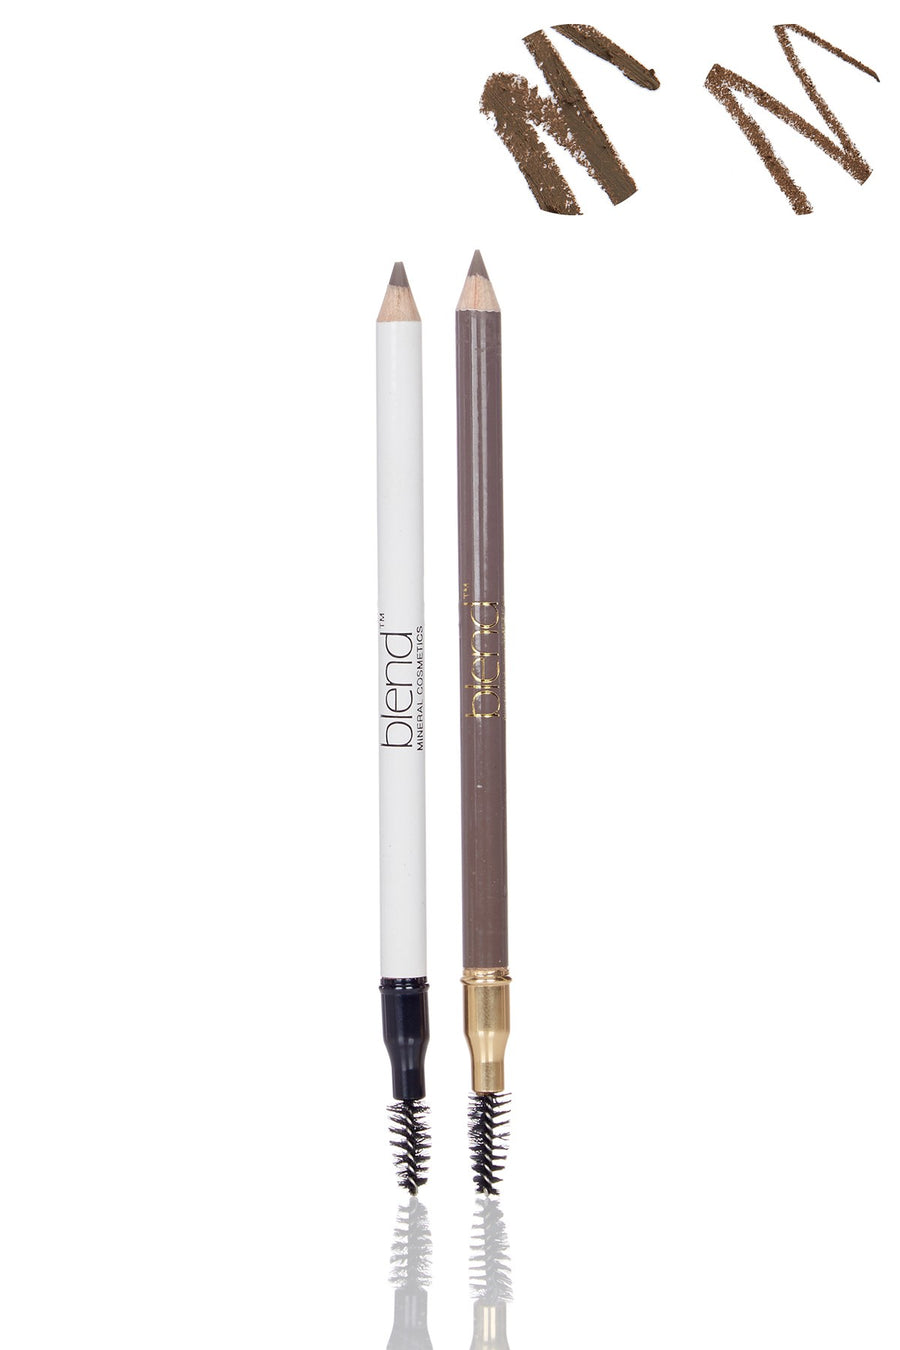 Universal Brow Definer - Set of Soft Touch & Hard Touch Universal Formula Professional Eyebrow Pencils